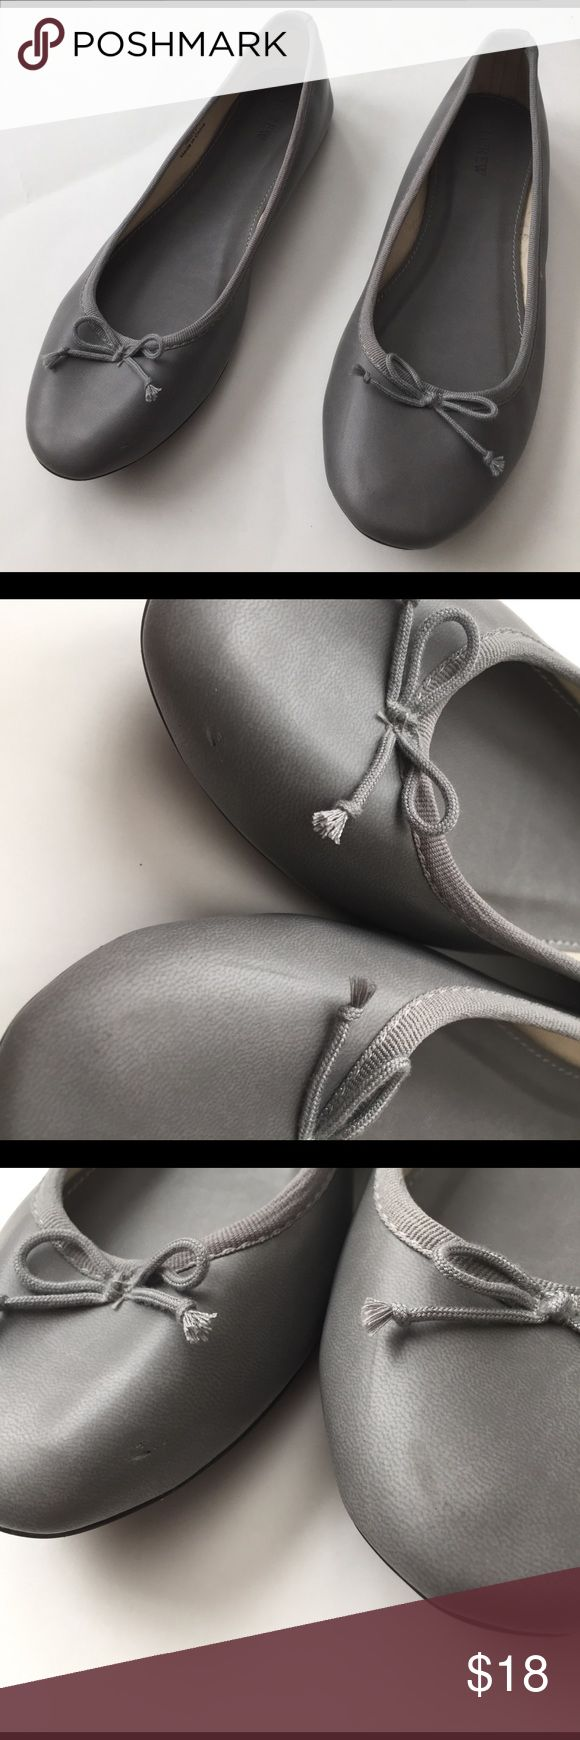 Jcrew Factory Classic Ballet Flat, Grey, 7 Great condition. Minor mark (see left and right close up). Barely noticeable when wearing. Jcrew factory Shoes Flats & Loafers